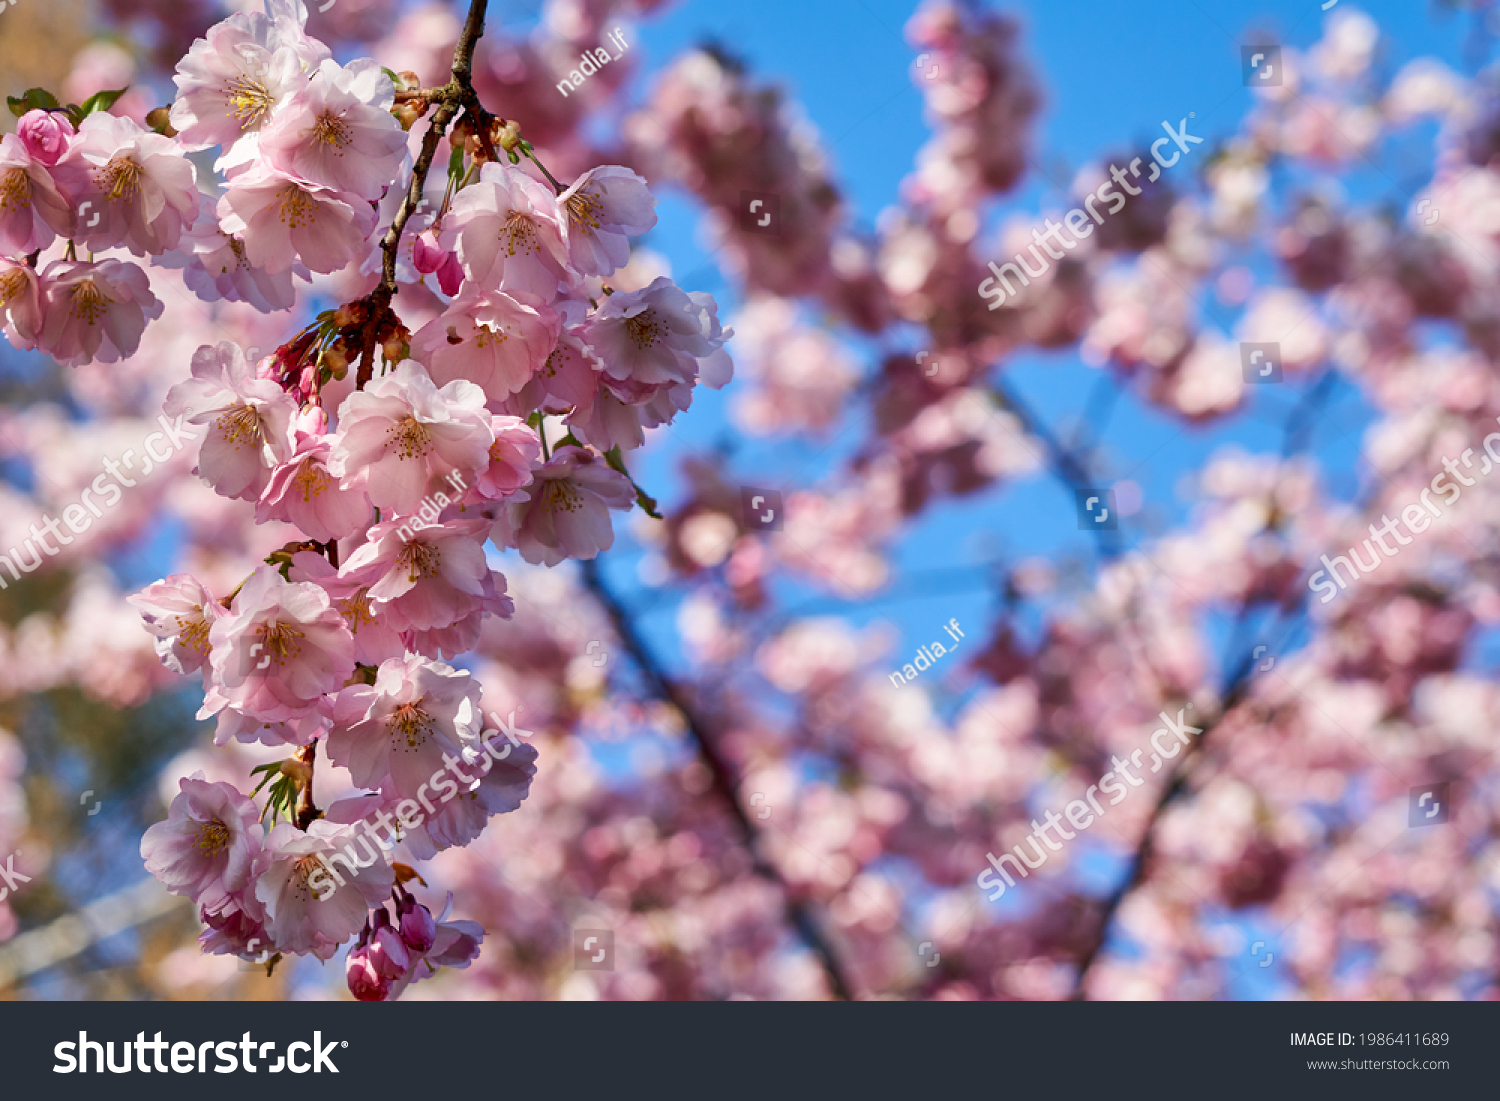 Selective focus of beautiful branches of pink Cherry blossoms on the tree under blue sky, Beautiful Sakura flowers during spring season in the park, Flora pattern texture, Nature floral background. #1986411689